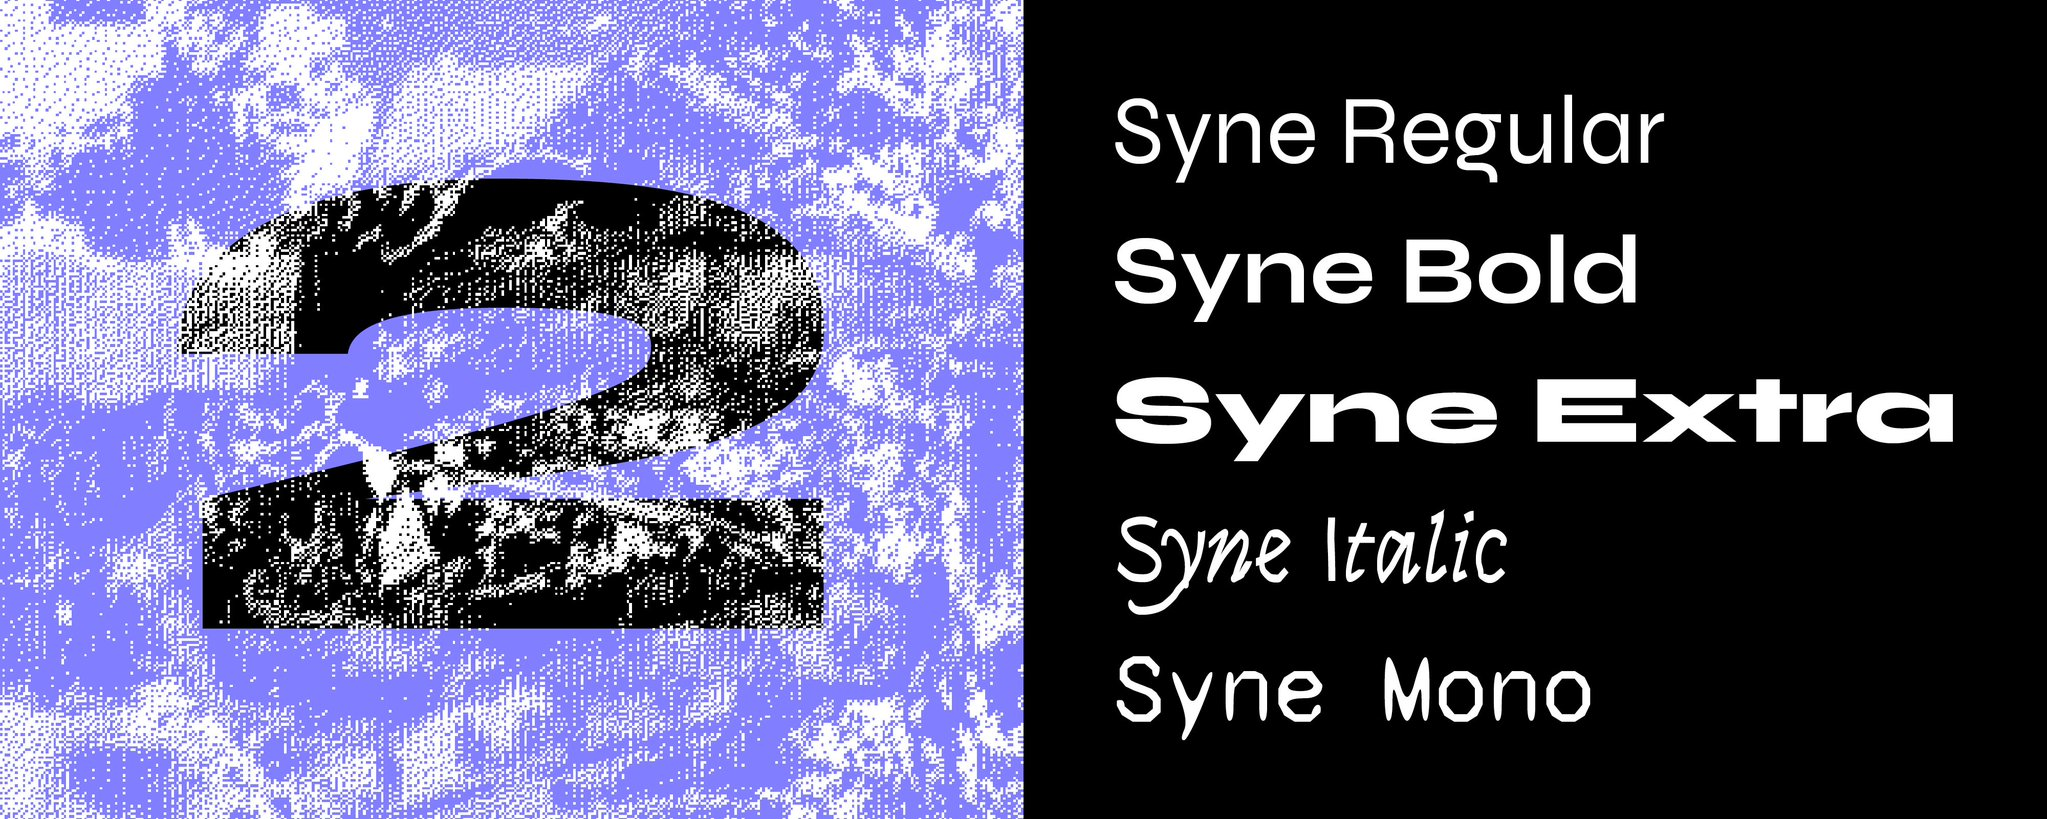 A new version of Syne is out, with more alternates, brand new accents, and a variable font version.